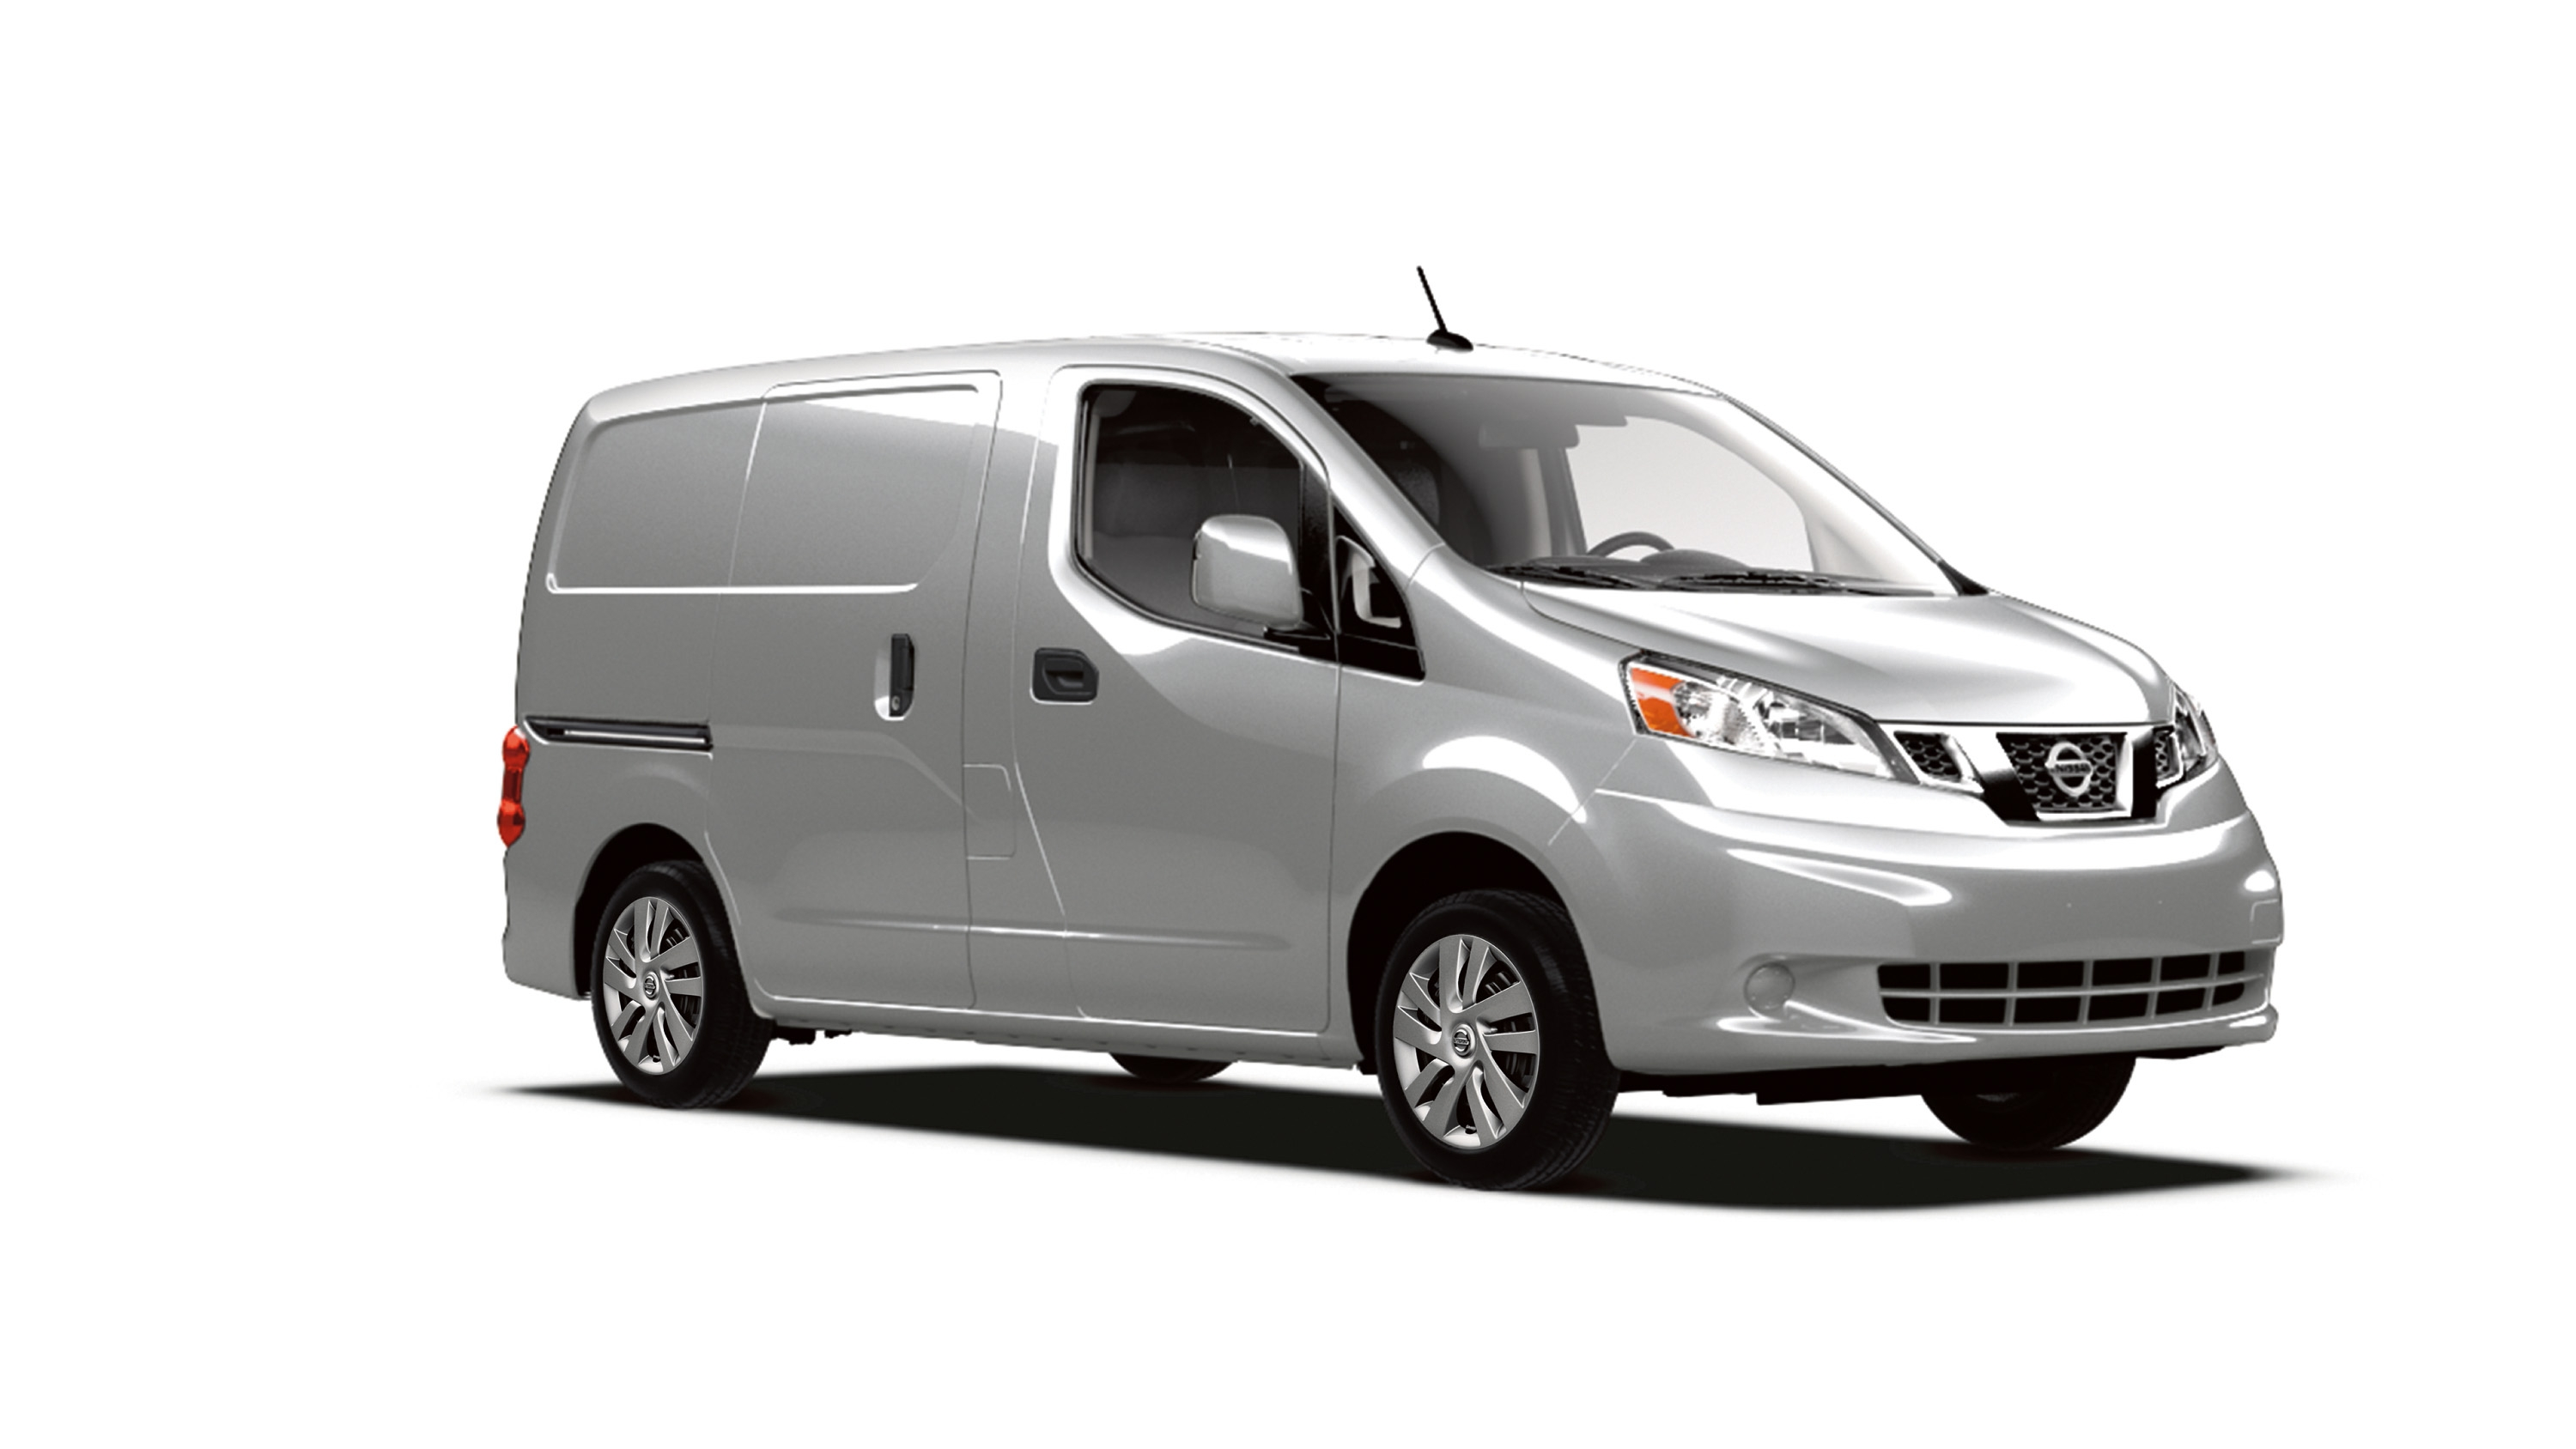 new and used nissan nv200 prices photos reviews specs the car connection. Black Bedroom Furniture Sets. Home Design Ideas